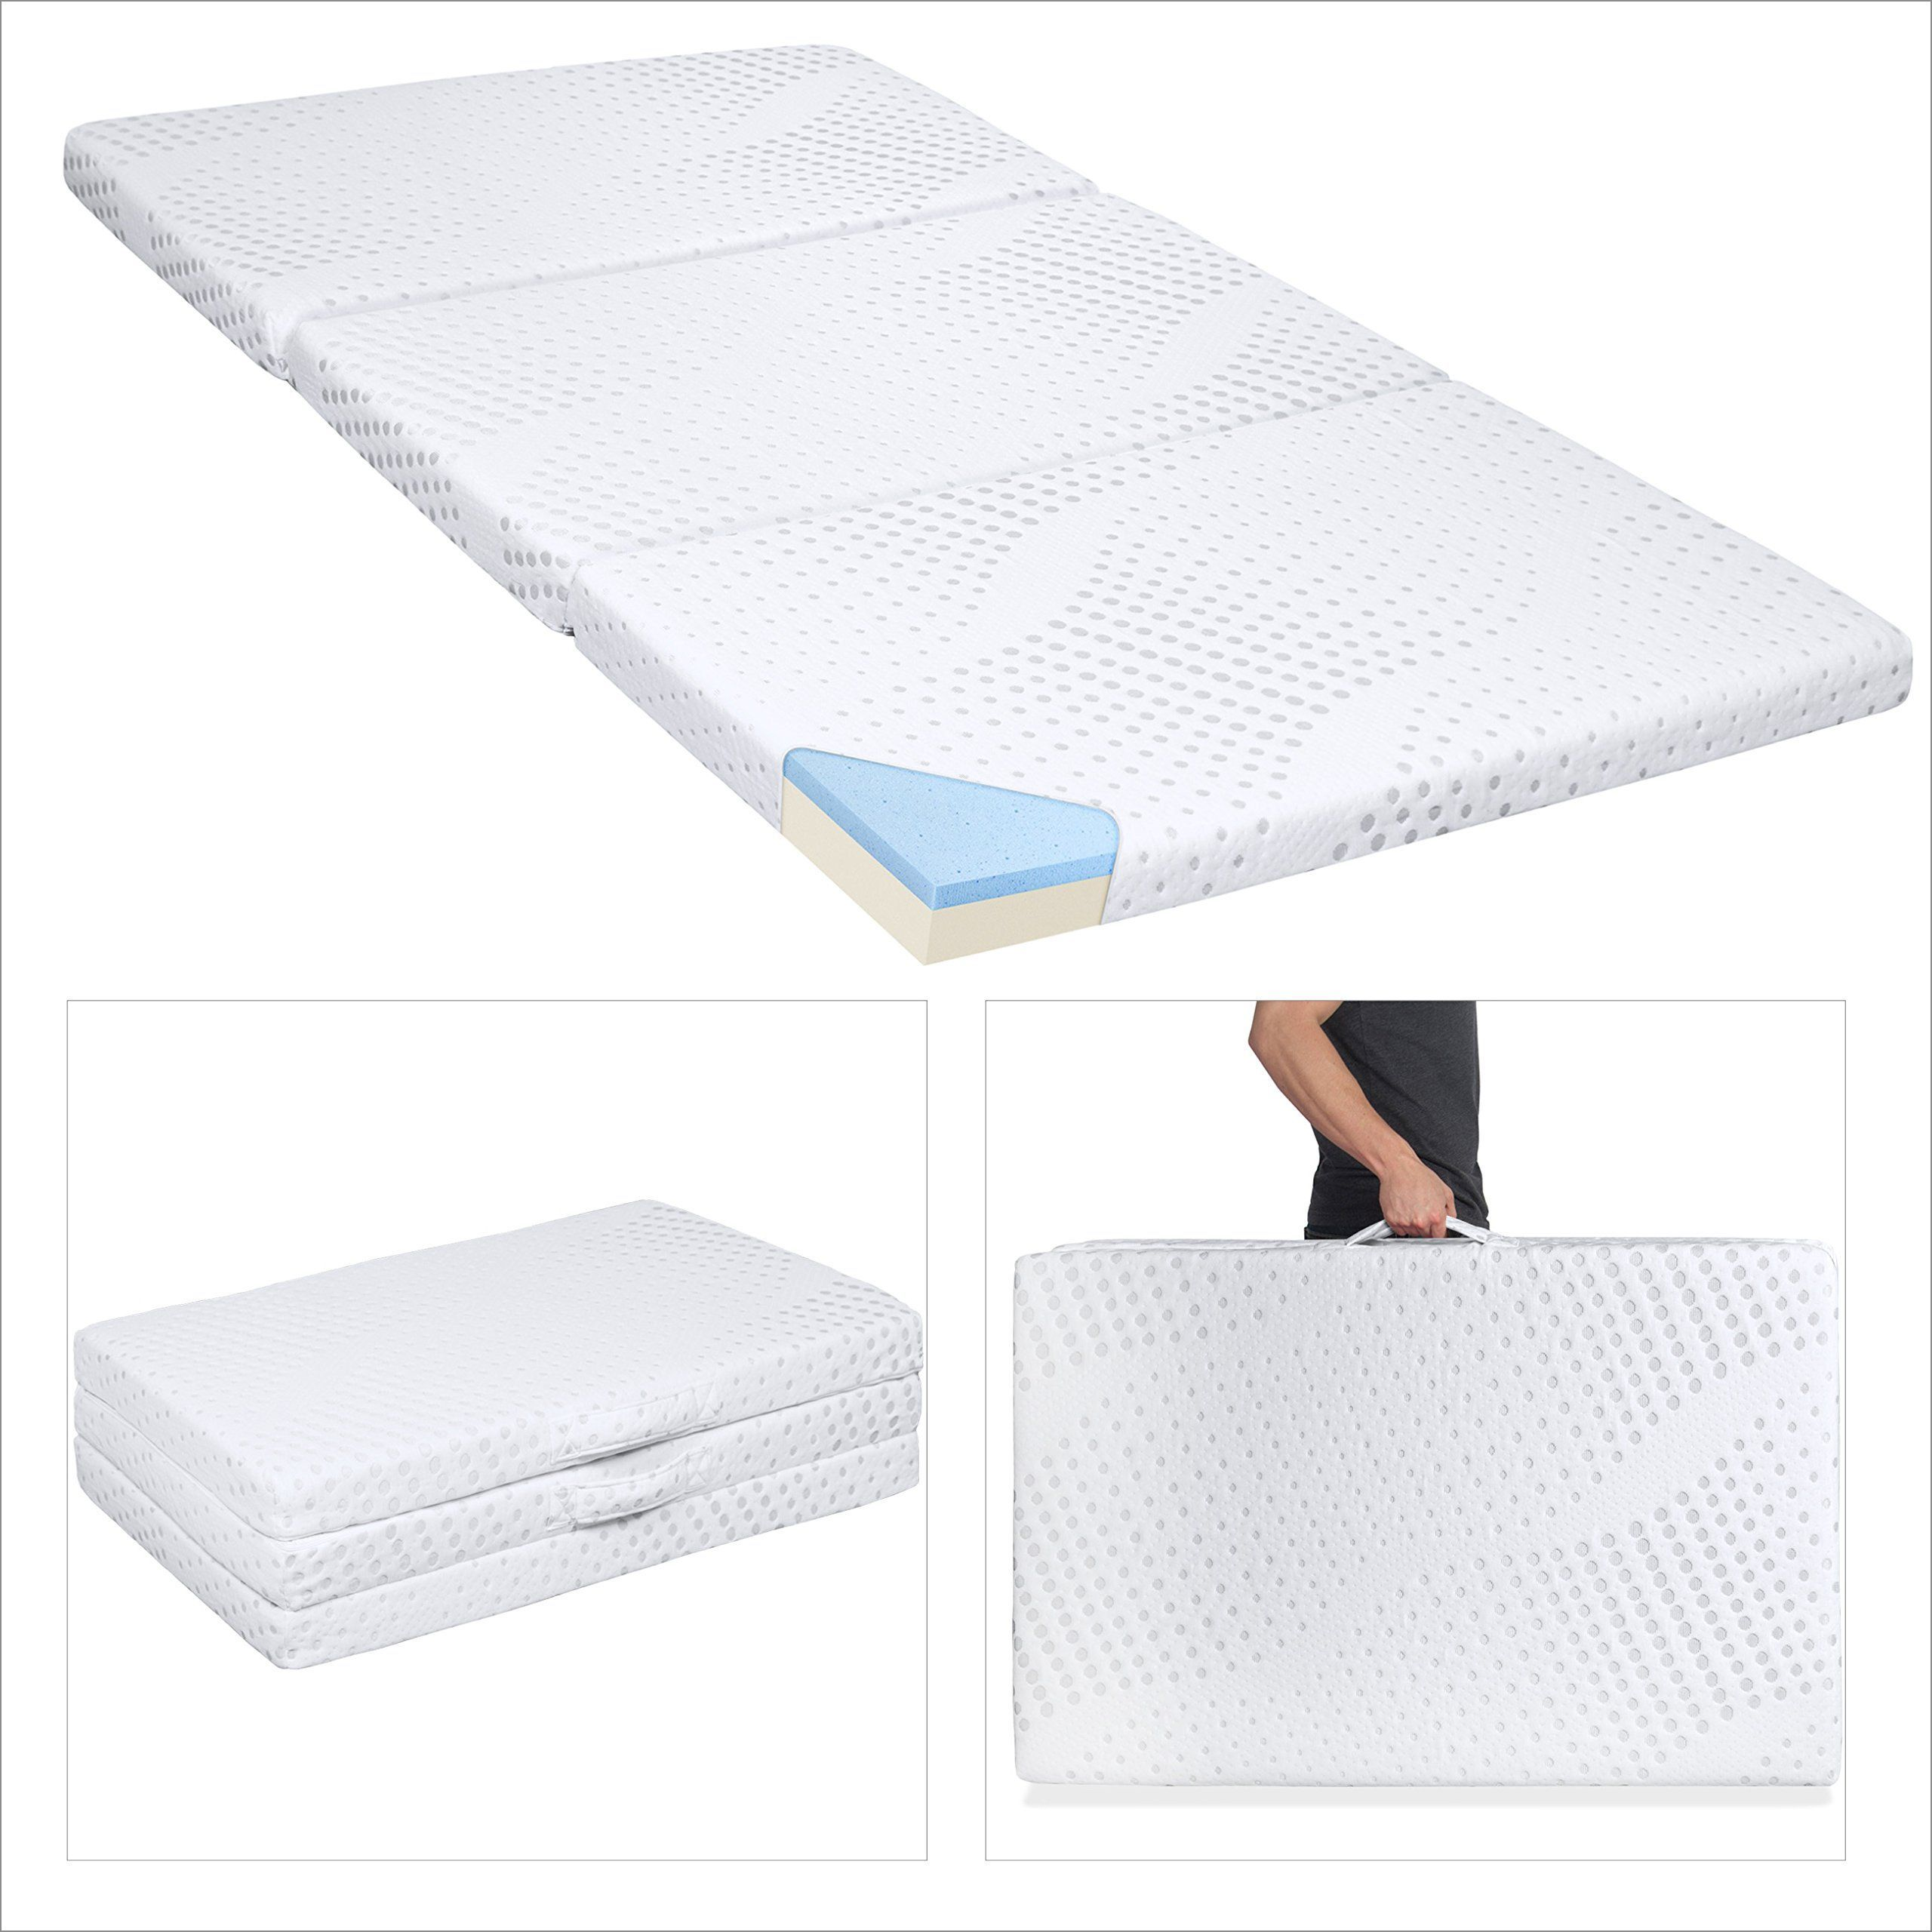 Folding Portable Mattress Check More At Https Www Cdomakis Photography Com Folding Portable Matt Gel Mattress Topper Memory Foam Mattress Topper Gel Mattress